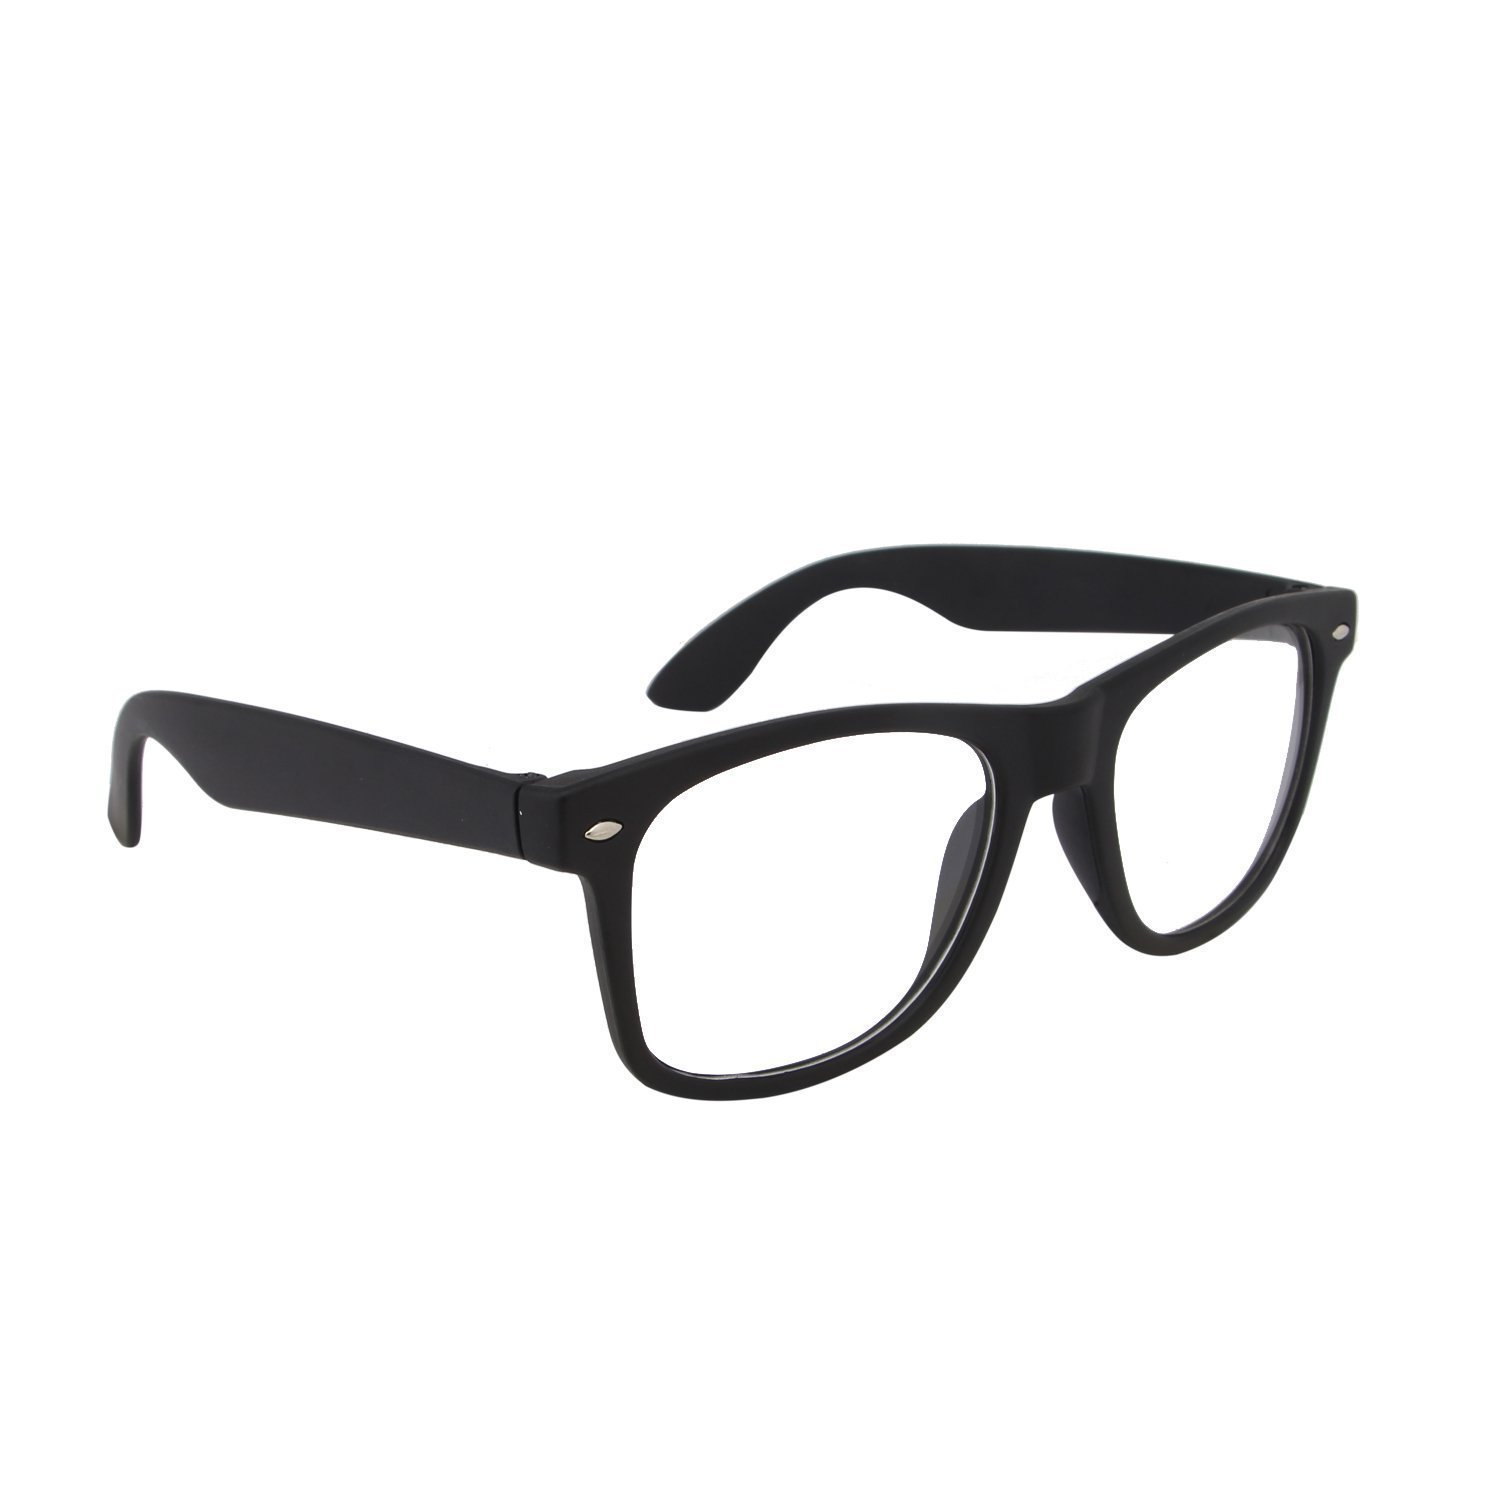 spectacle frames online  Spectacle Frames for Women: Buy Spectacle Frames for Women, Eye ...